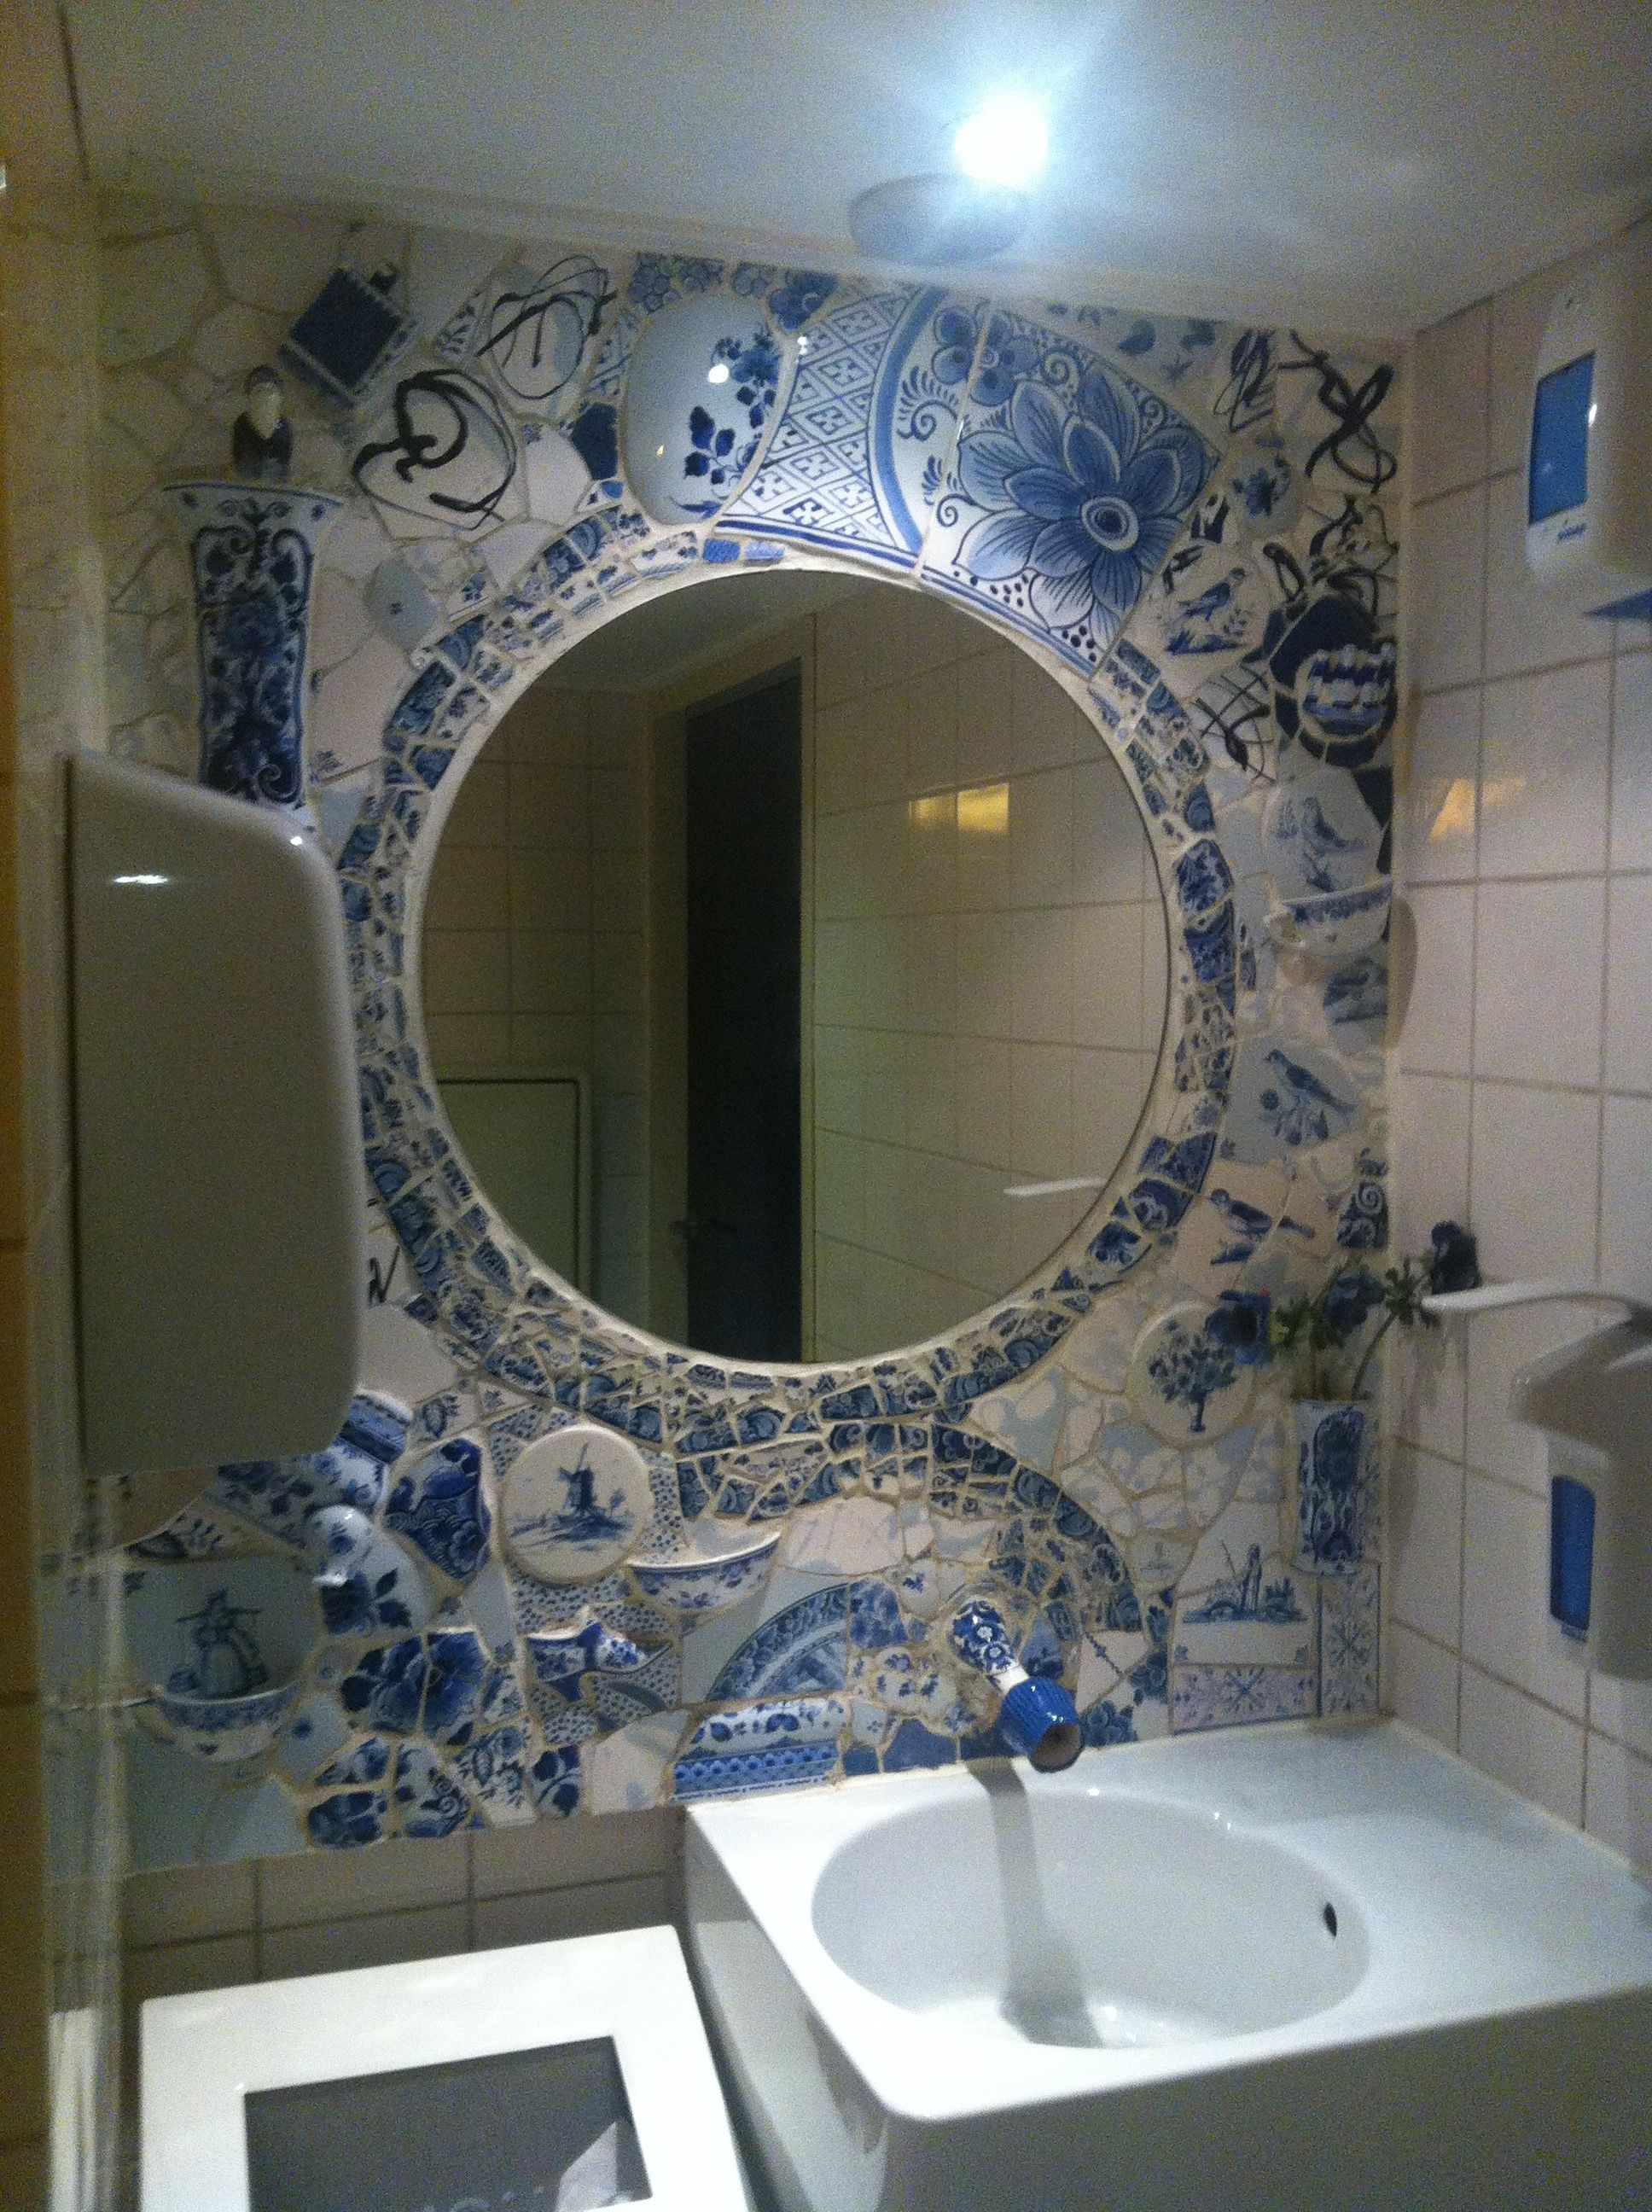 Broken Delft Blue china creates a mirror frame